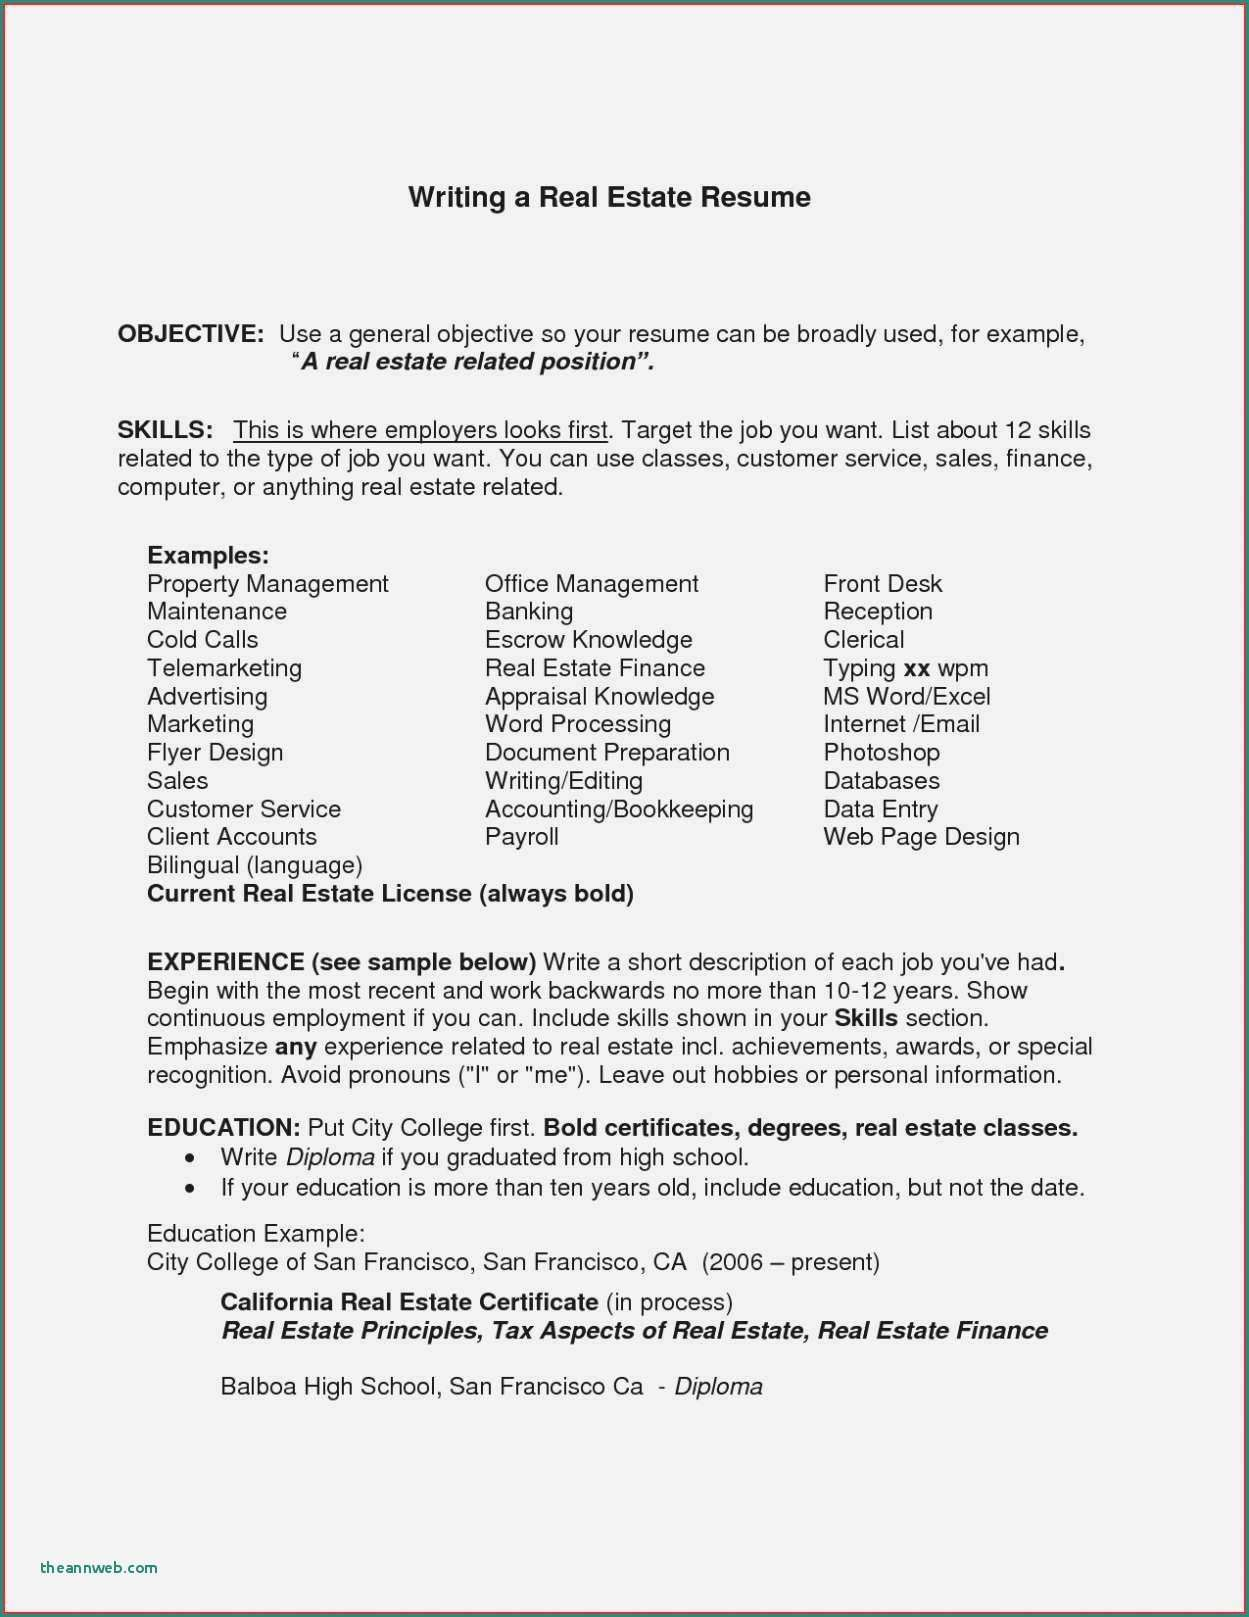 68 Awesome Gallery Of Resume Customer Service Achievements Examples Check More At Https Www Ourpetscrawley Com 68 Awesome Gallery Of Resume Customer Service A